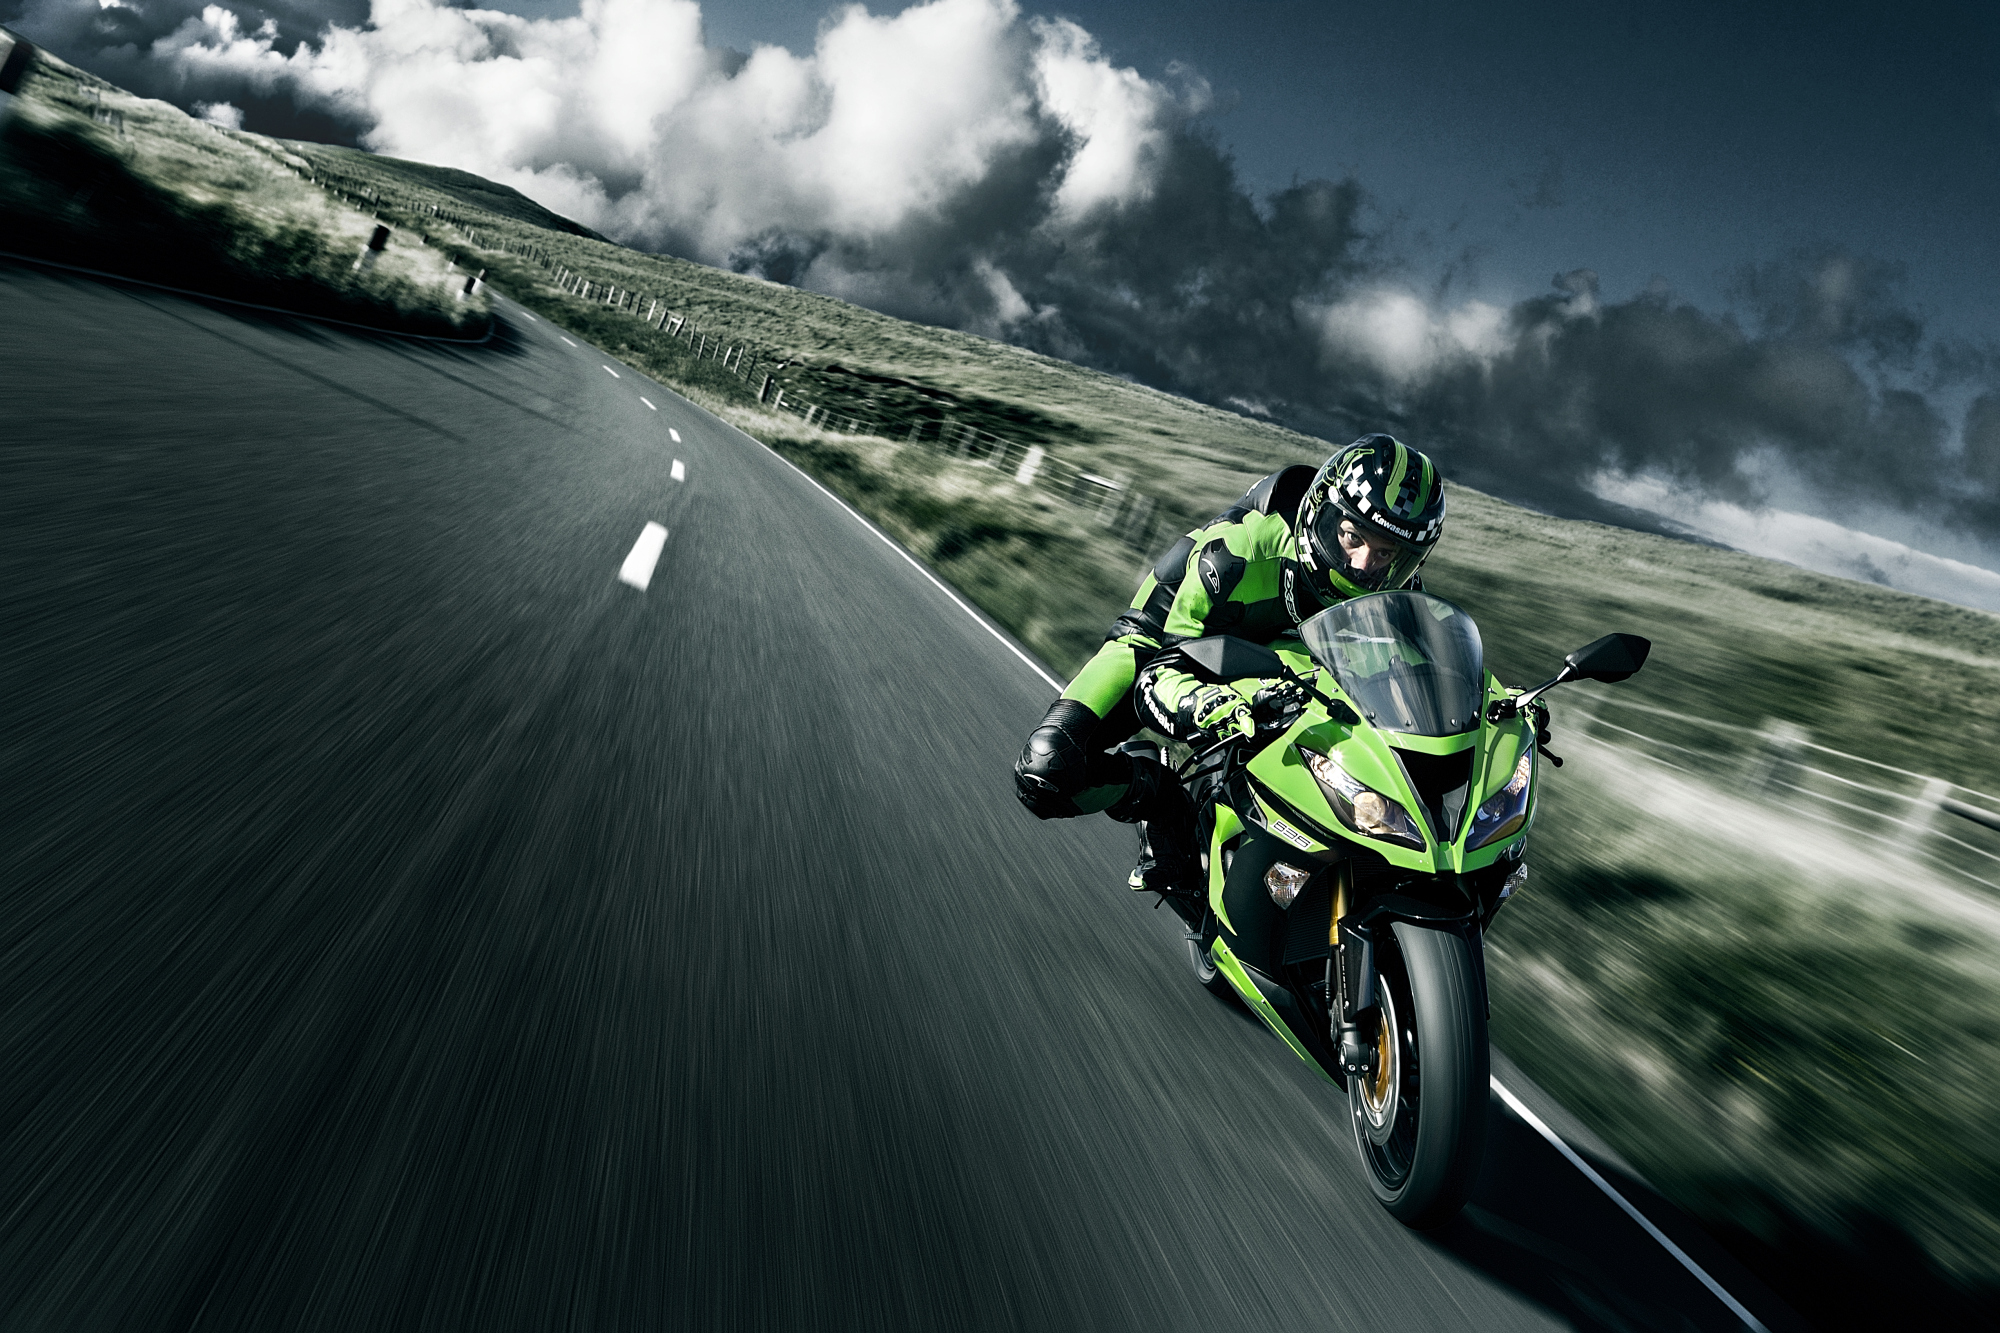 Zx6r Wallpaper 46 images on Genchiinfo 2000x1333